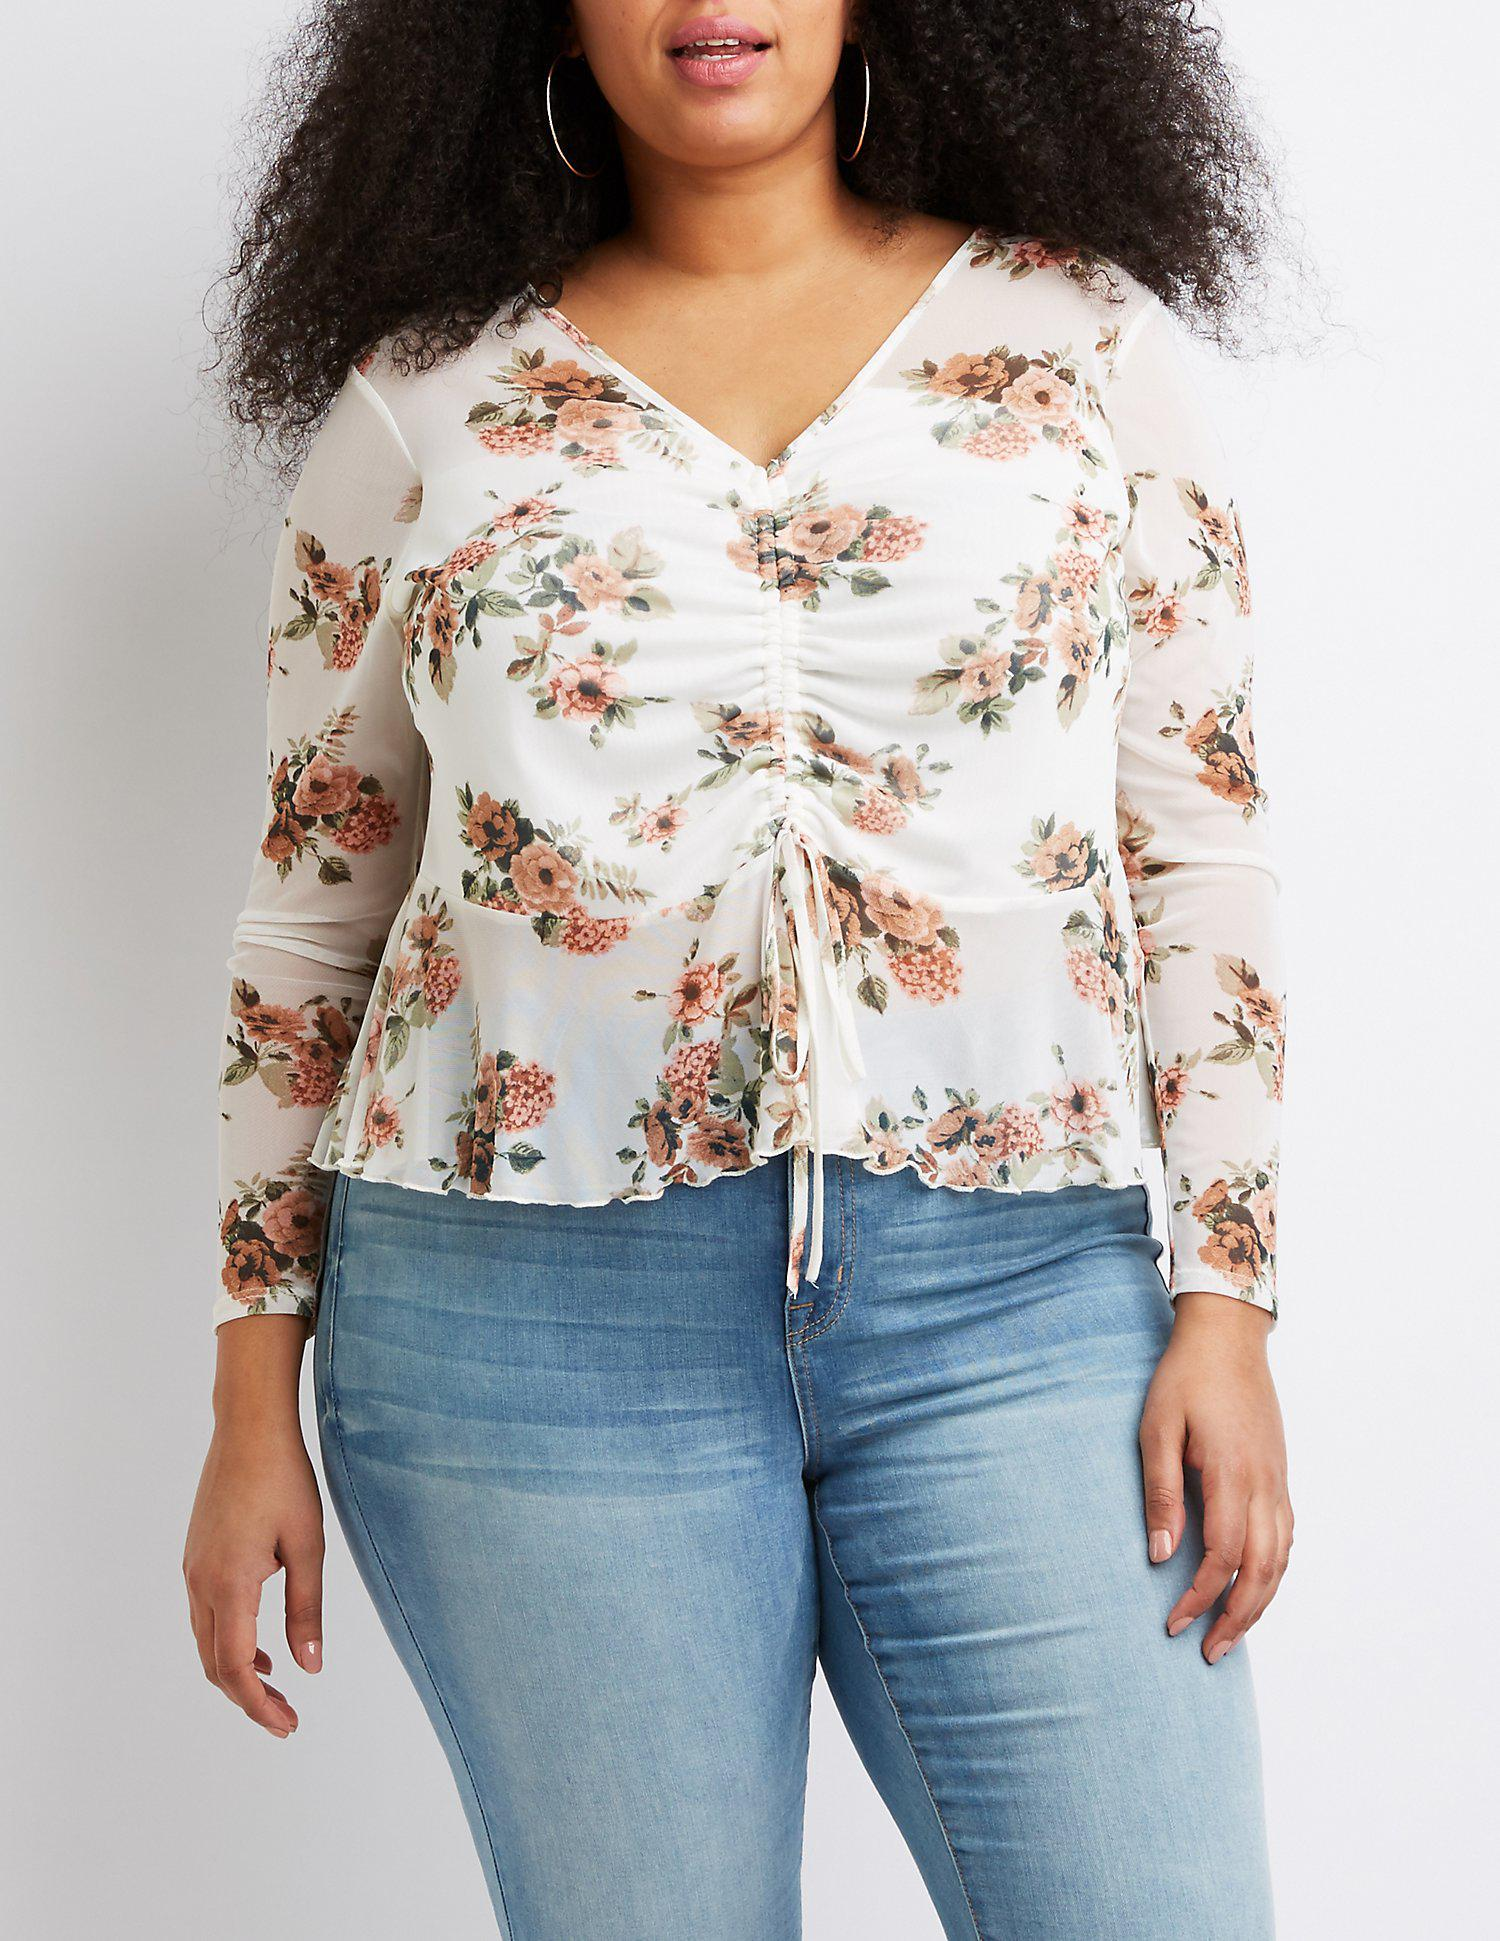 573b54bb032 Lyst - Charlotte Russe Plus Size Floral Ruched Crop Top in Blue ...